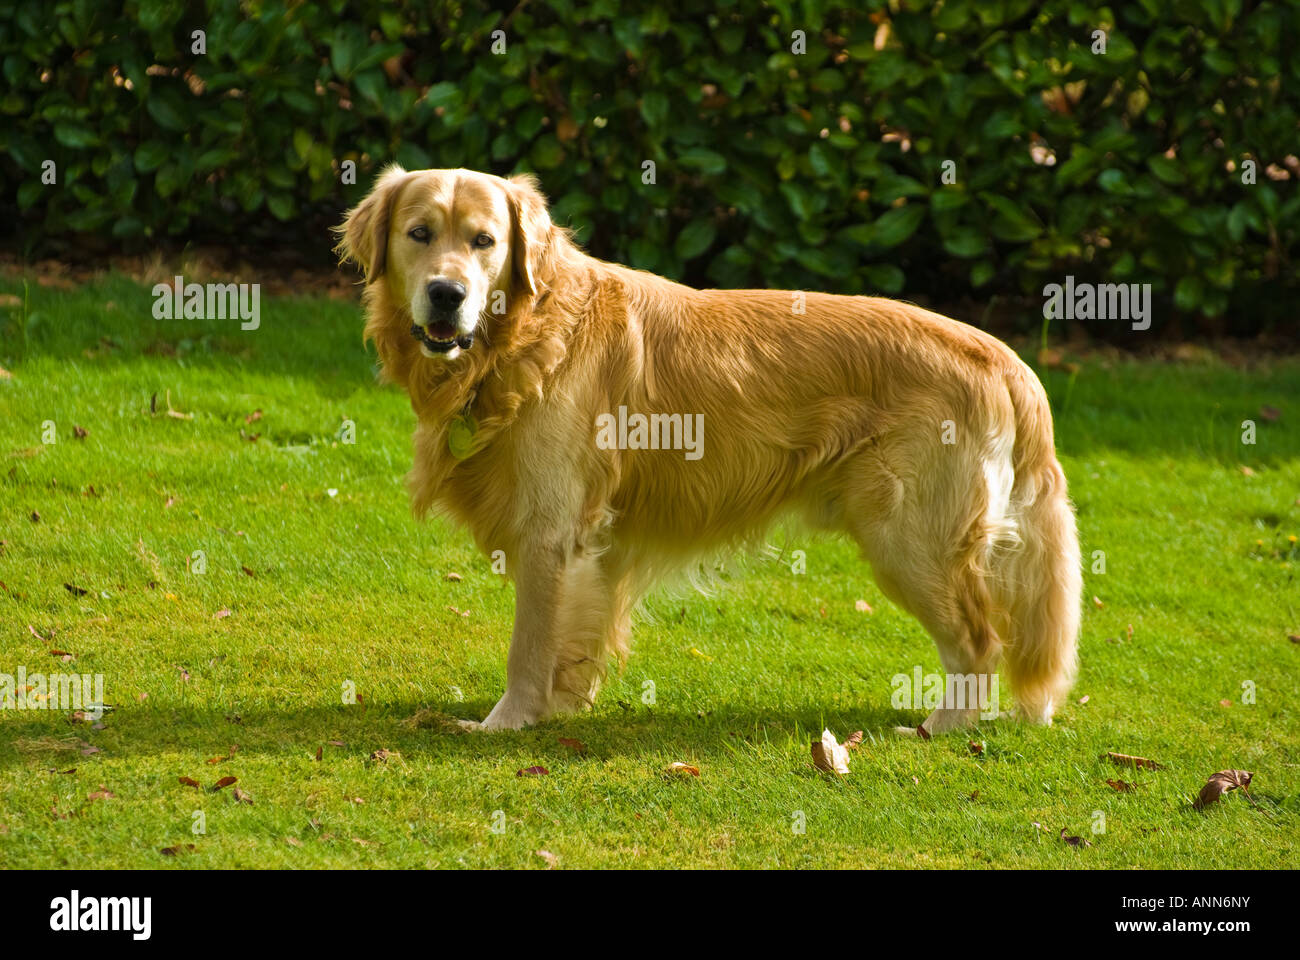 Male Golden Retriever Dog Standing Broadside On A Lawn In His Garden